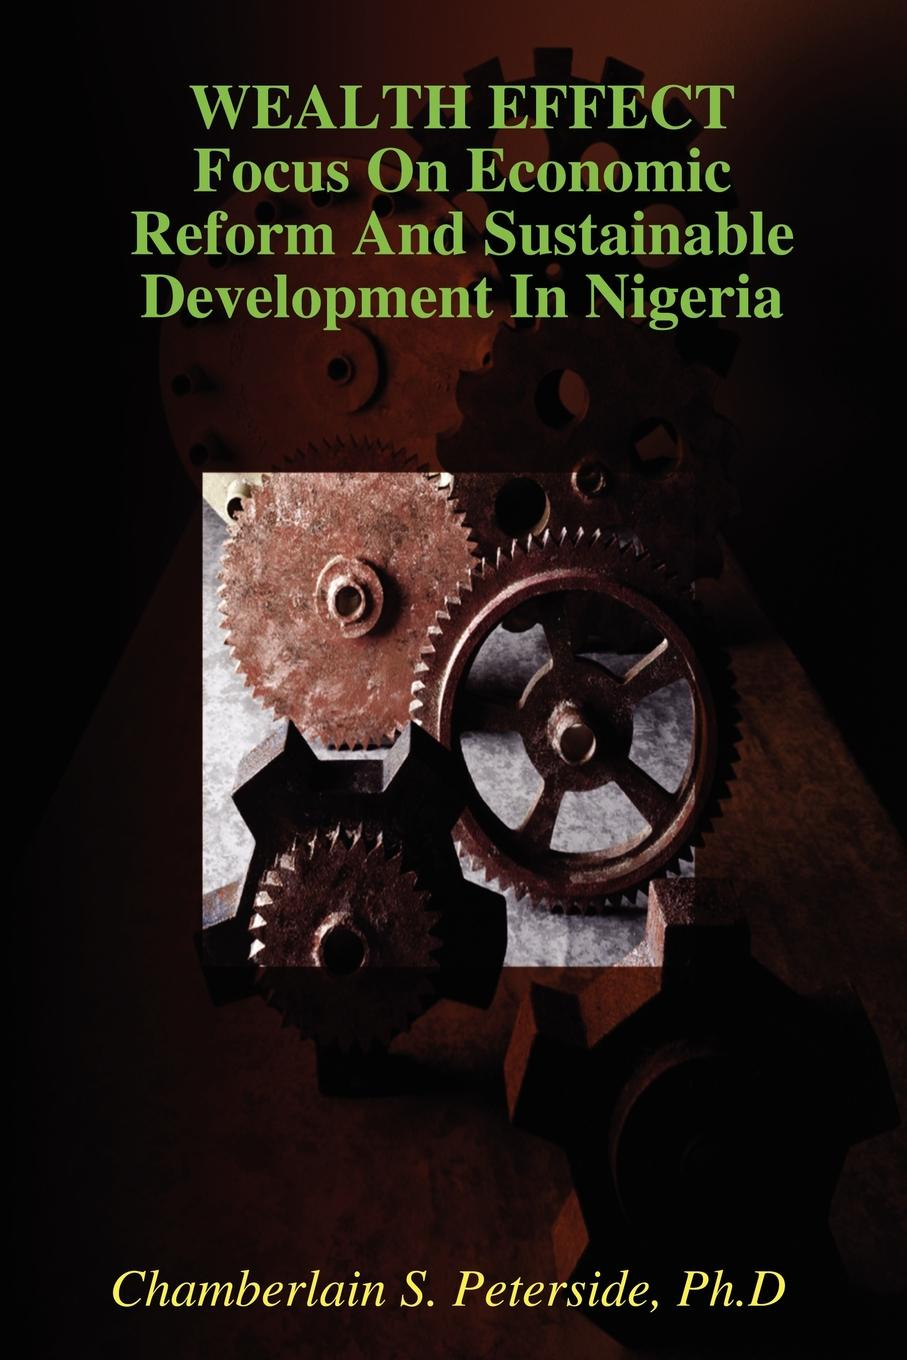 Ph.D Chamberlain S. Peterside WEALTH EFFECT Focus On Economic Reform And Sustainable Development In Nigeria daughtry daughtry it s not over the hits so far